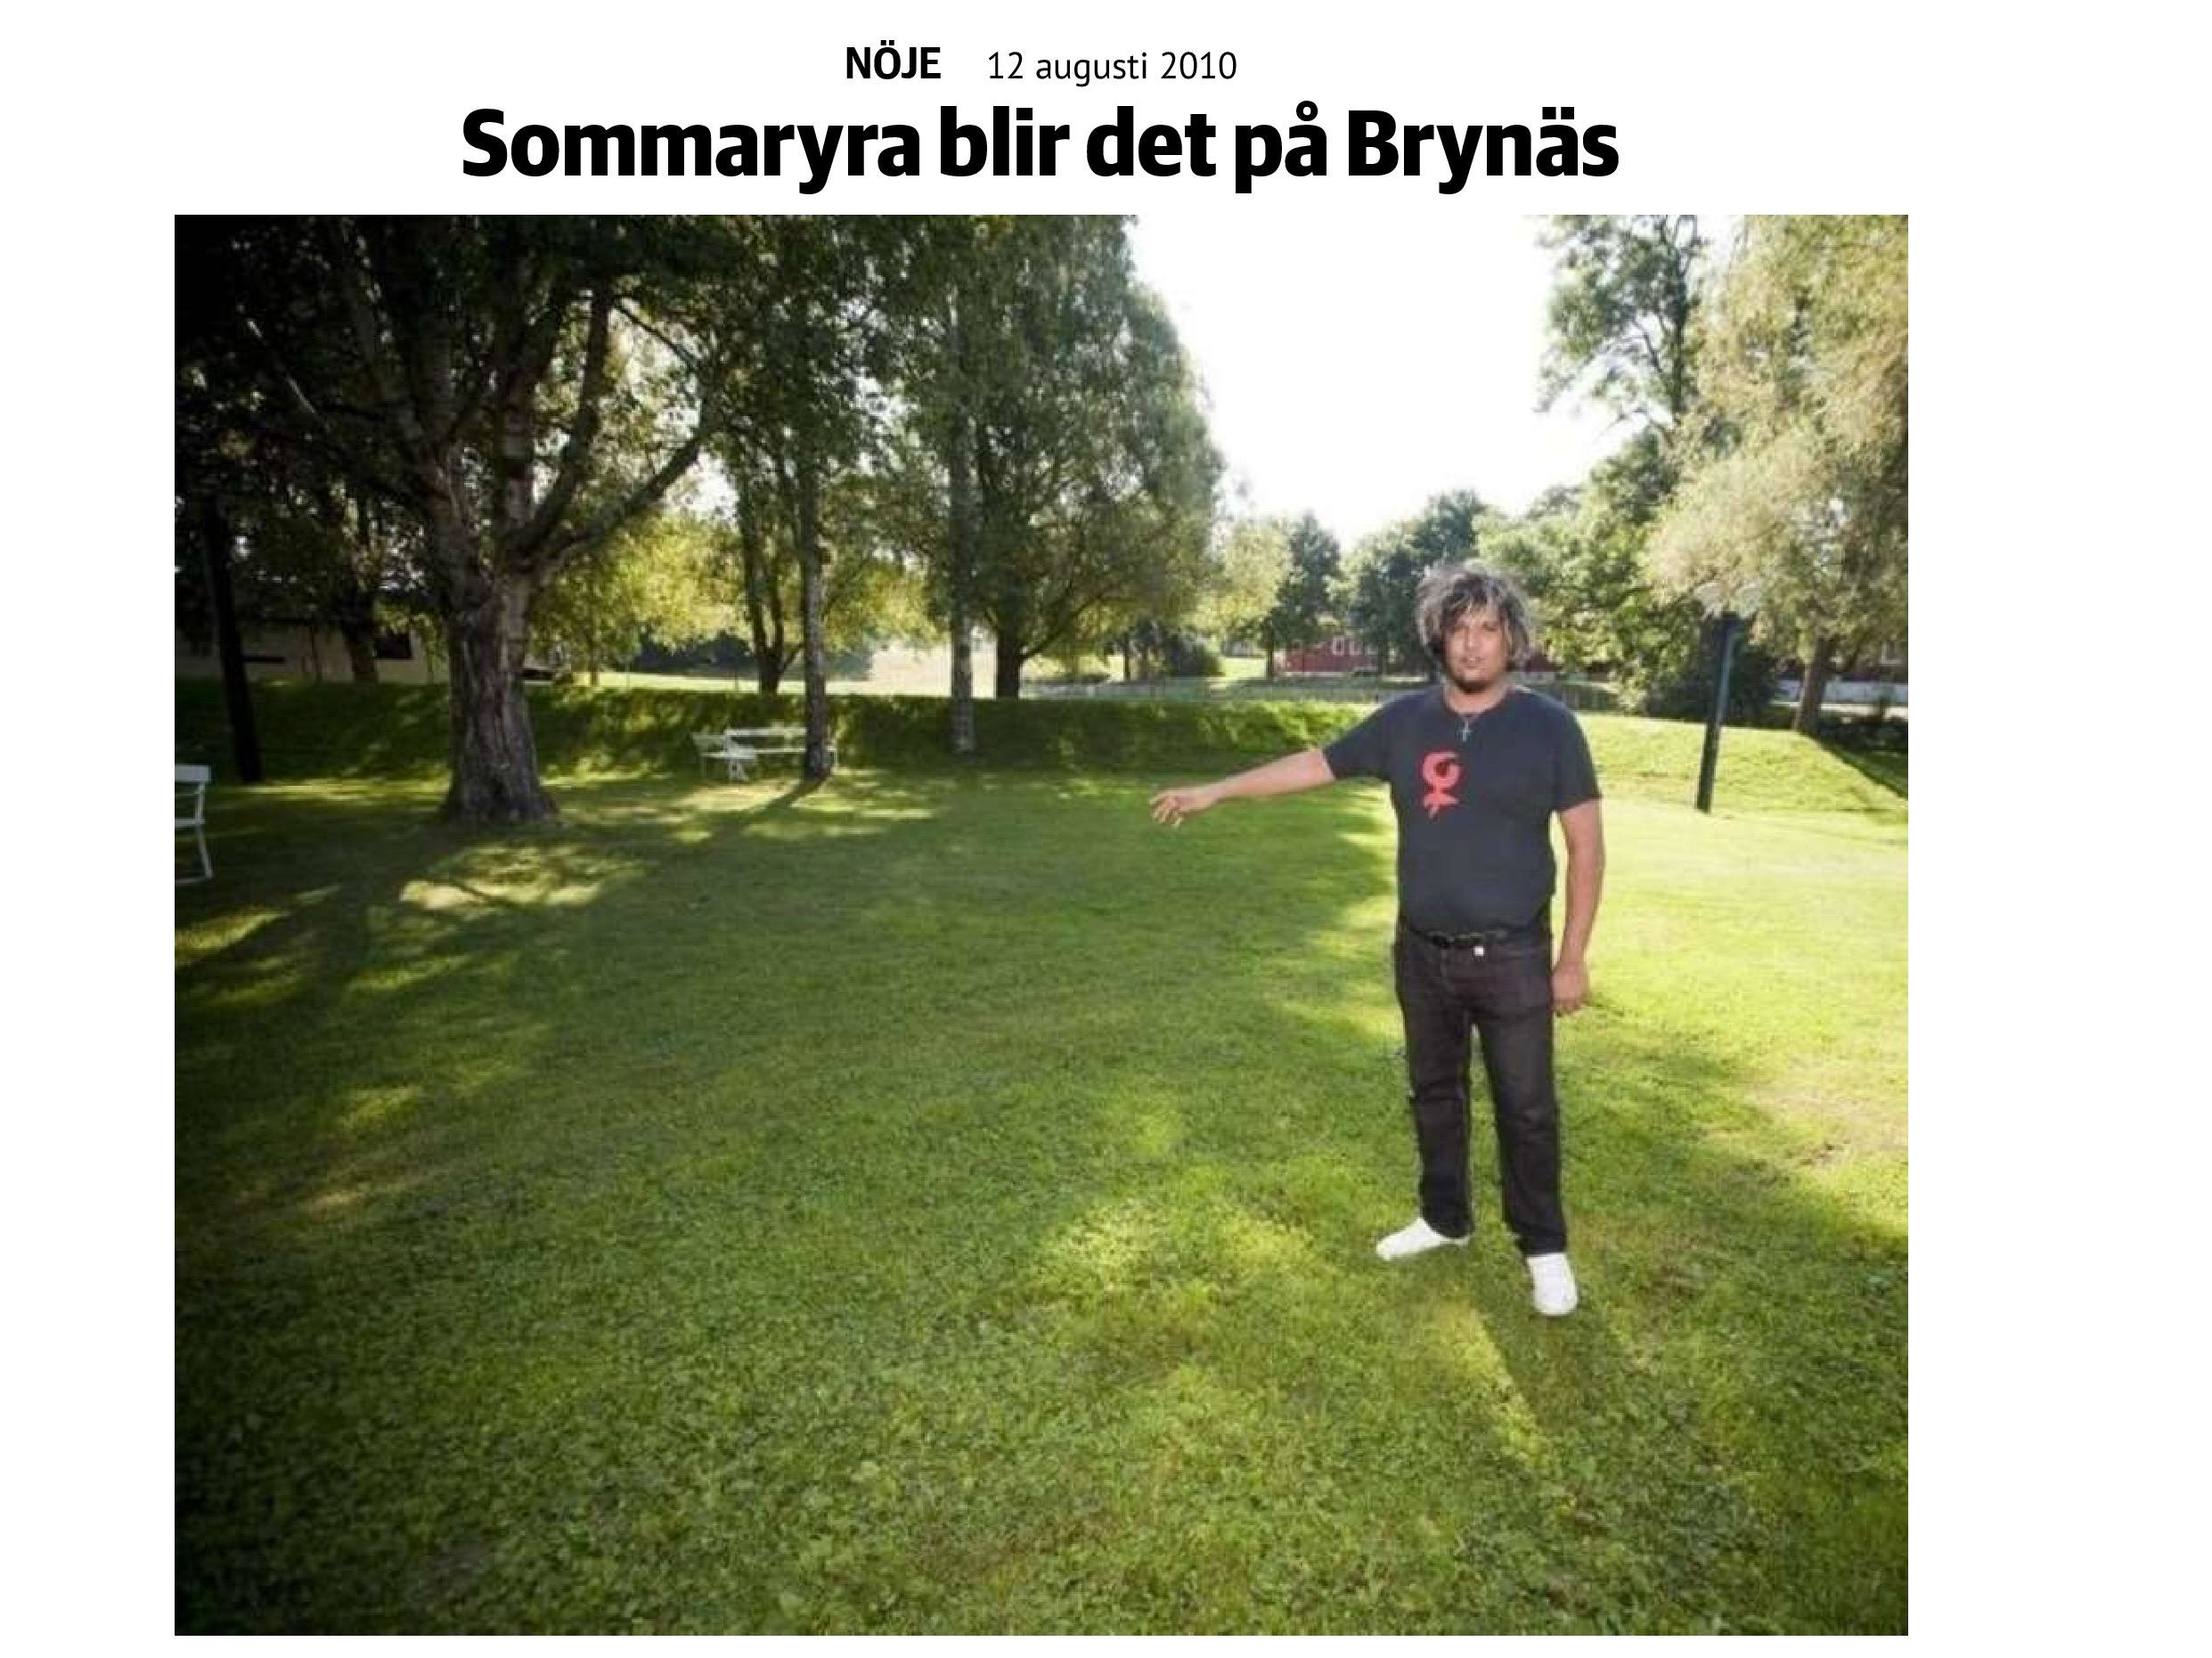 sommaryra-blir-det-pa-brynas-noje-www-gd-page-001